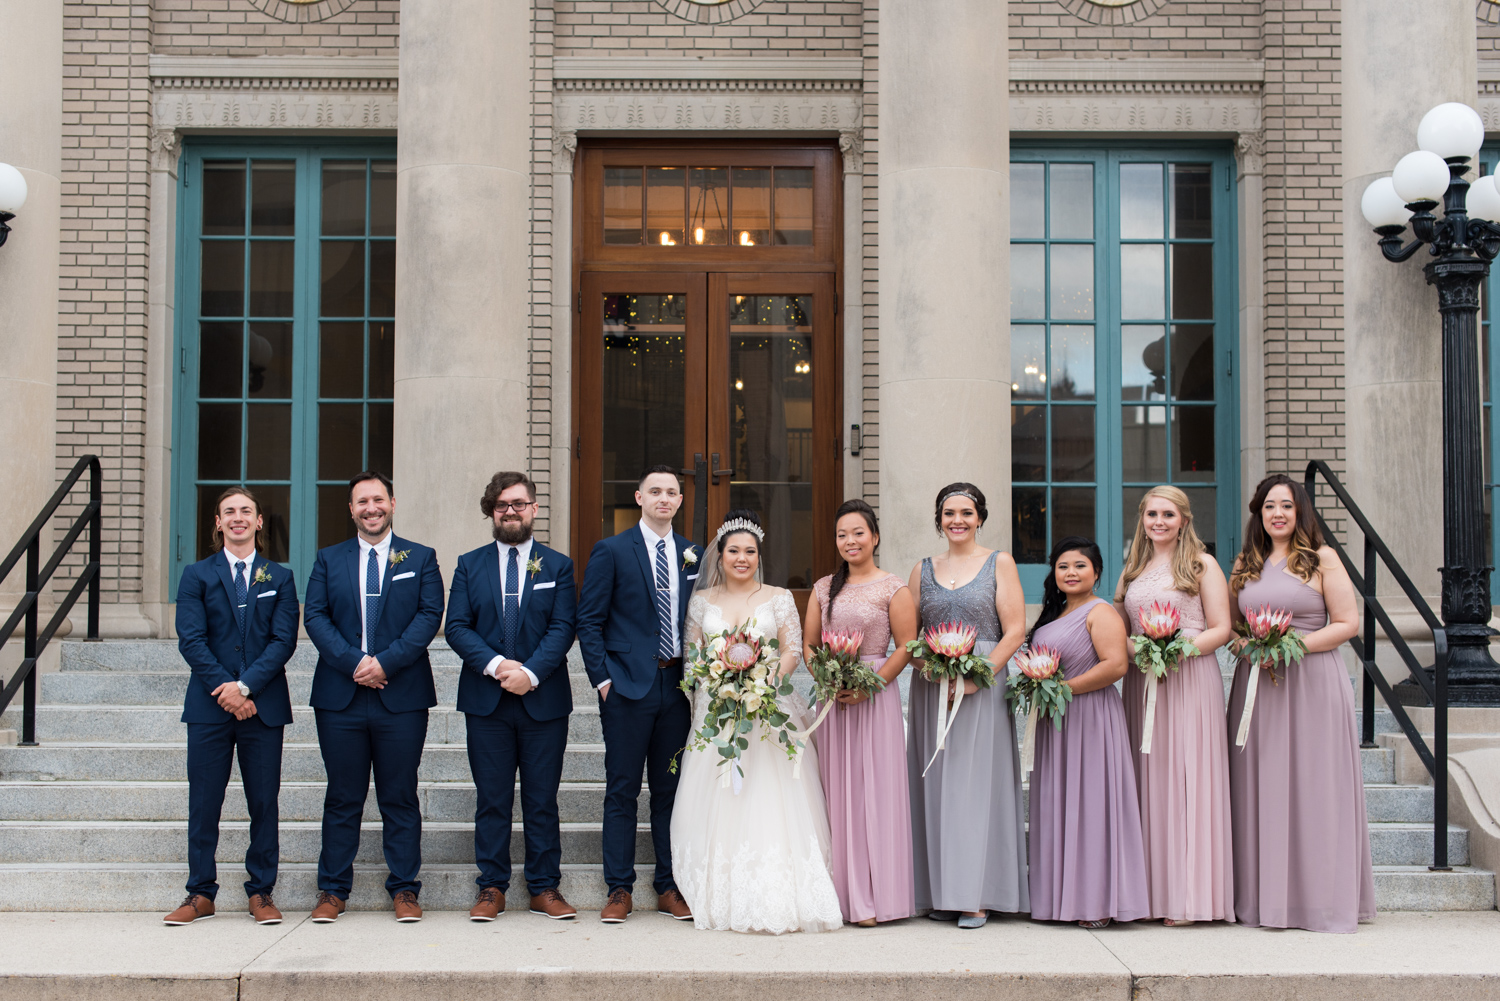 Rose Gold Wedding at Historic Post Office Virginia Harry Potter Themed Wedding-167.JPG